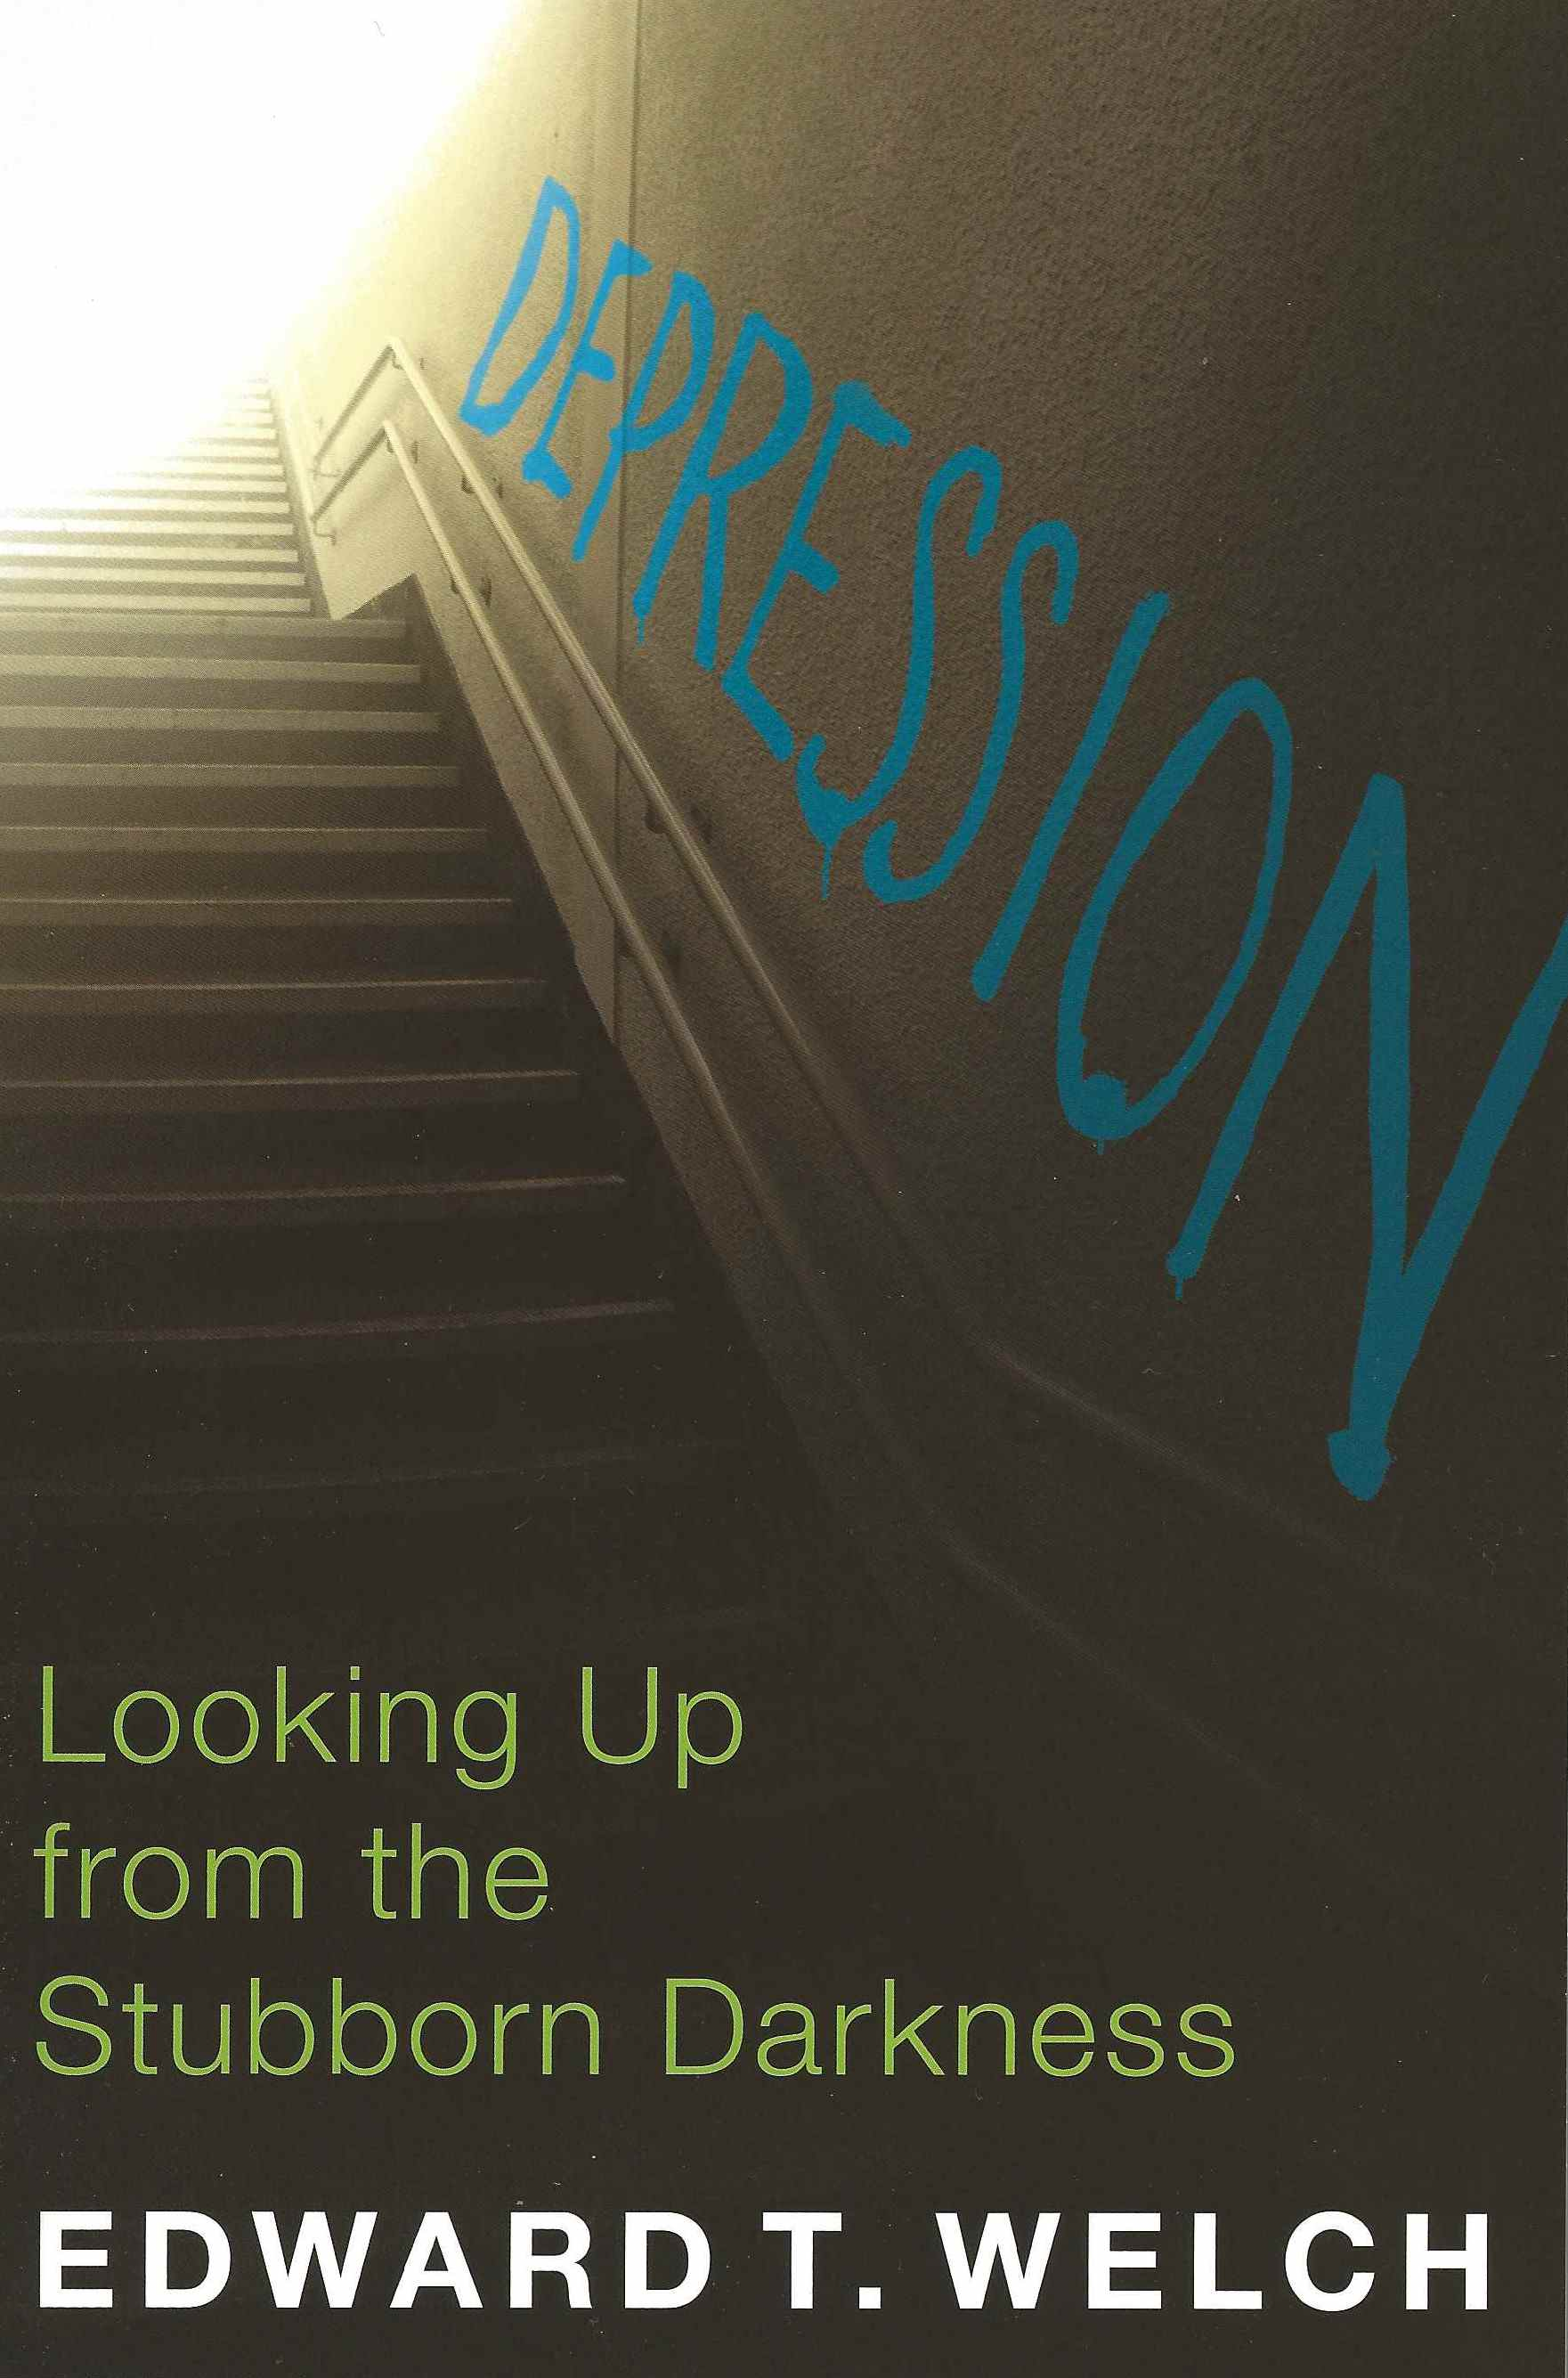 DEPRESSION, LOOKING UP FROM THE STUBBORN DARK Edward T. Welch